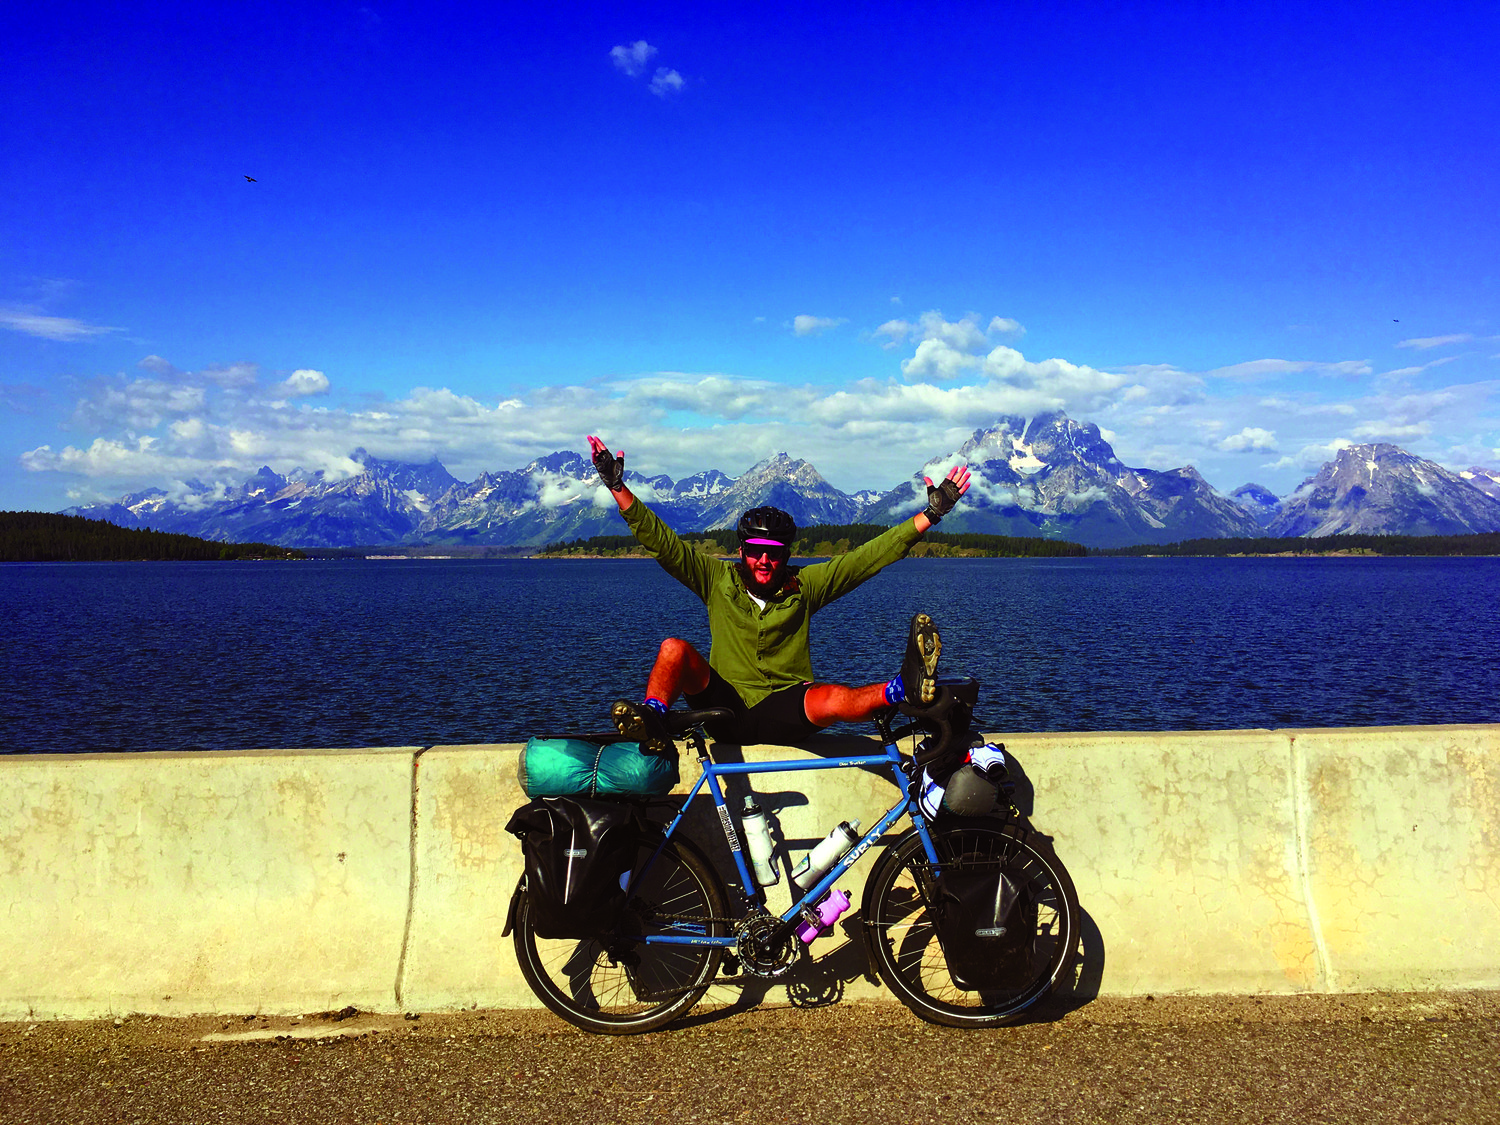 TAKING A BREAK: Jon Wish takes a breather during his cross-country trip at Teton National Park.